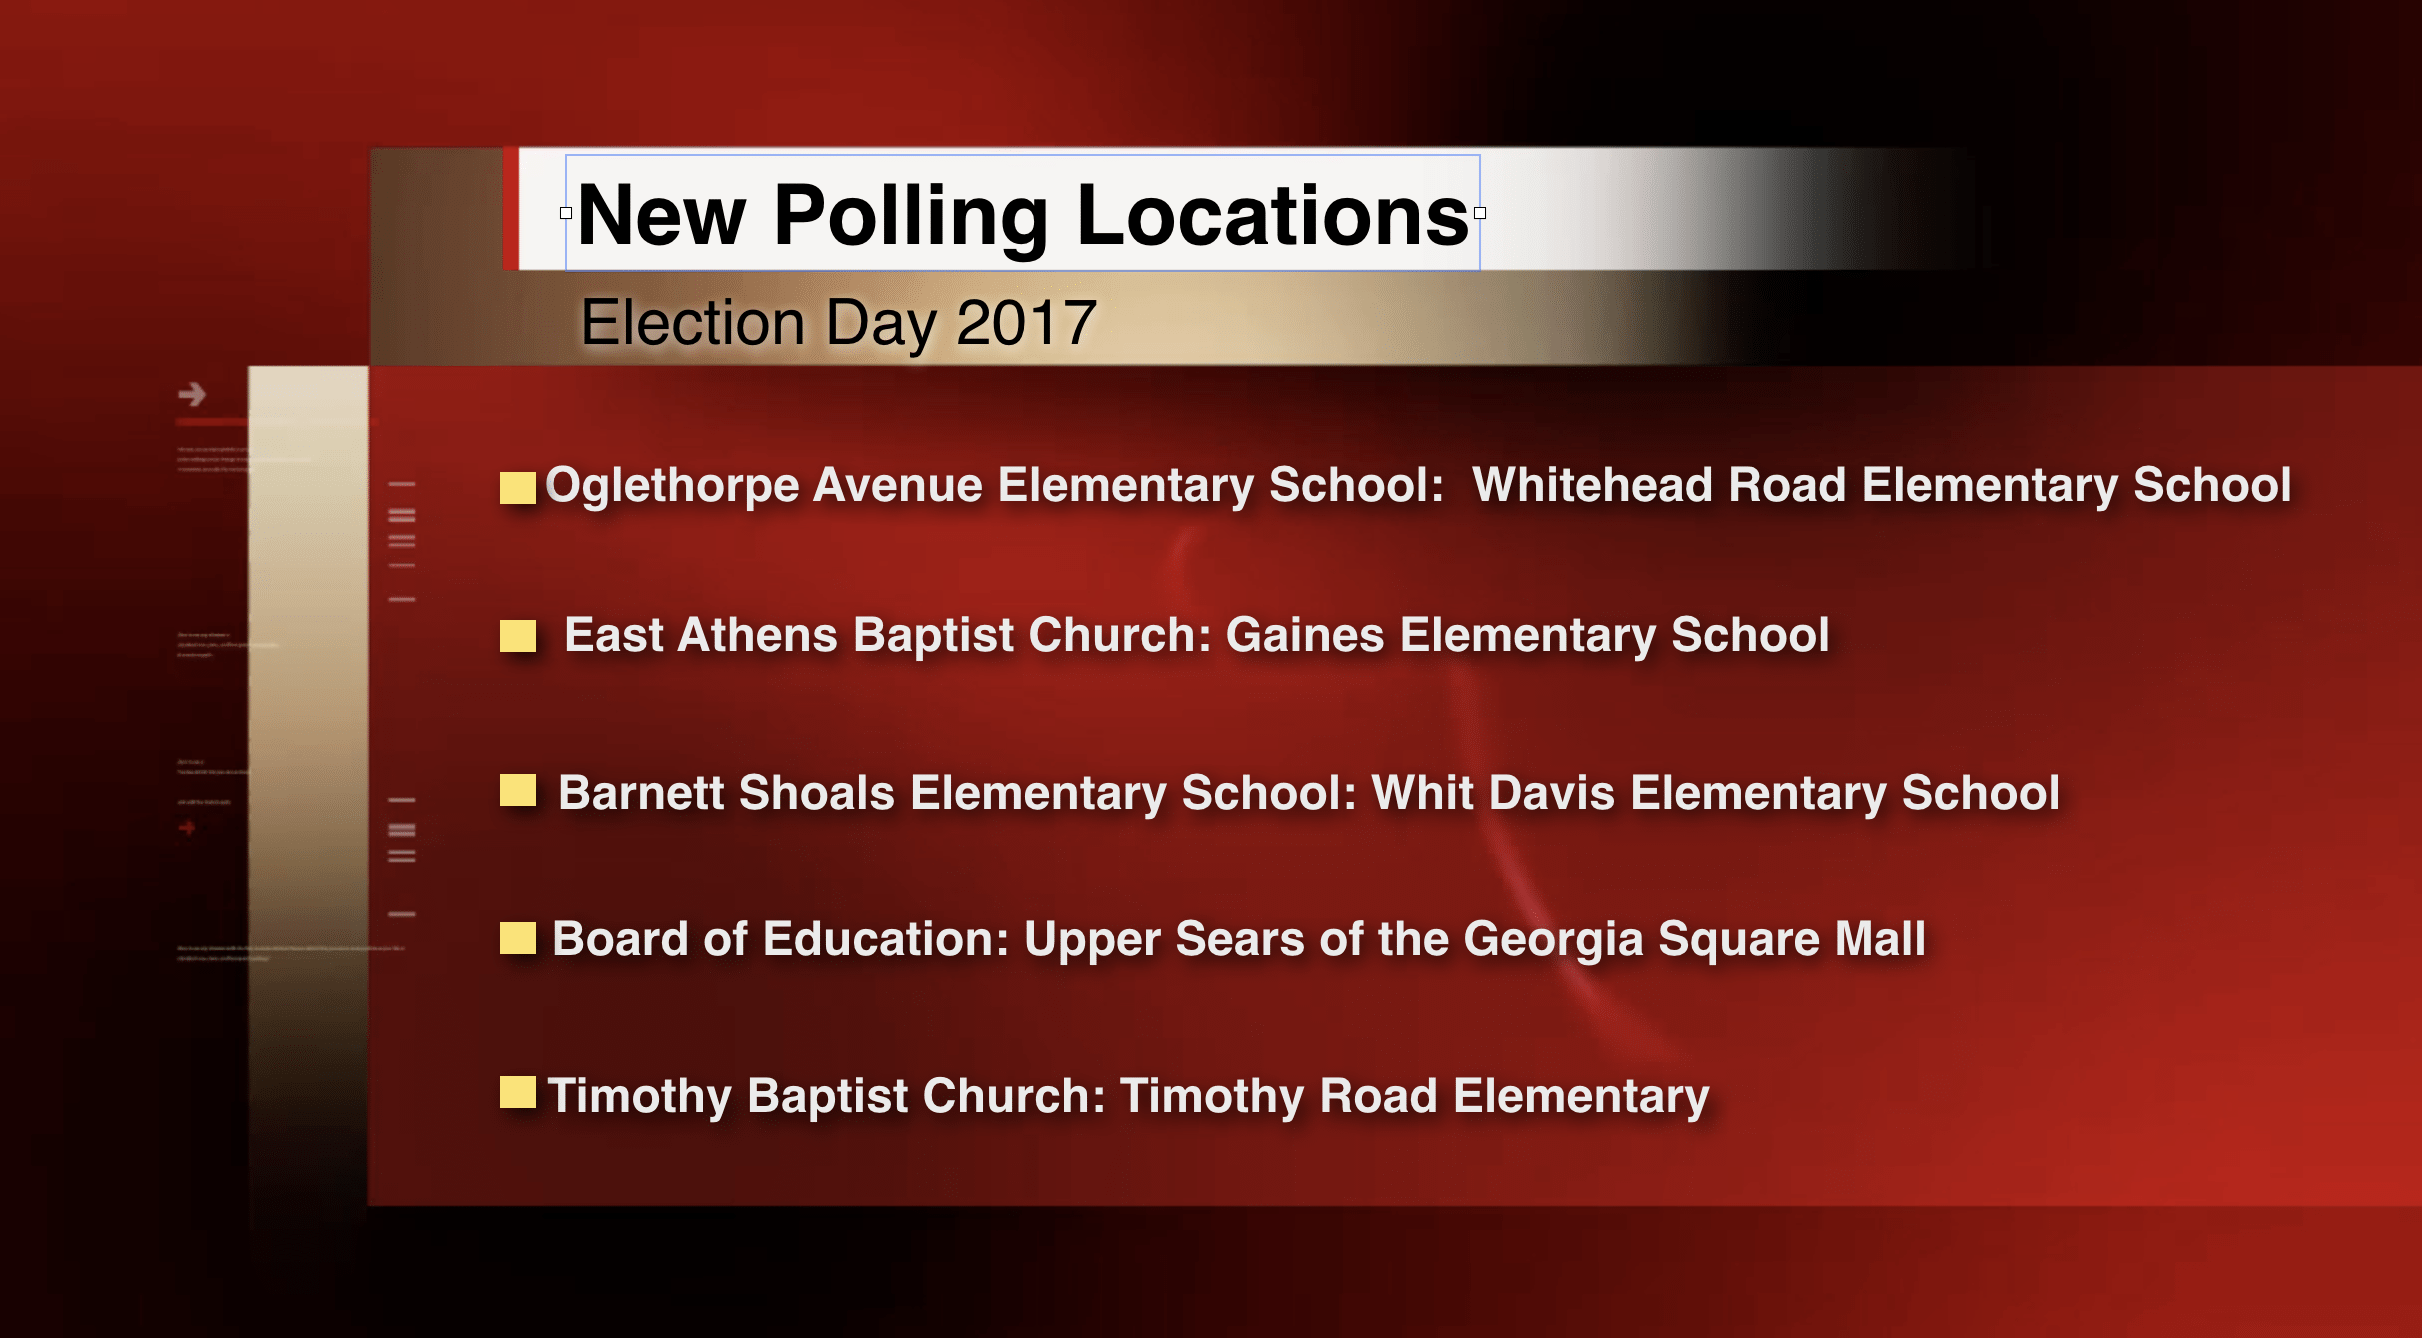 New Polling Locations